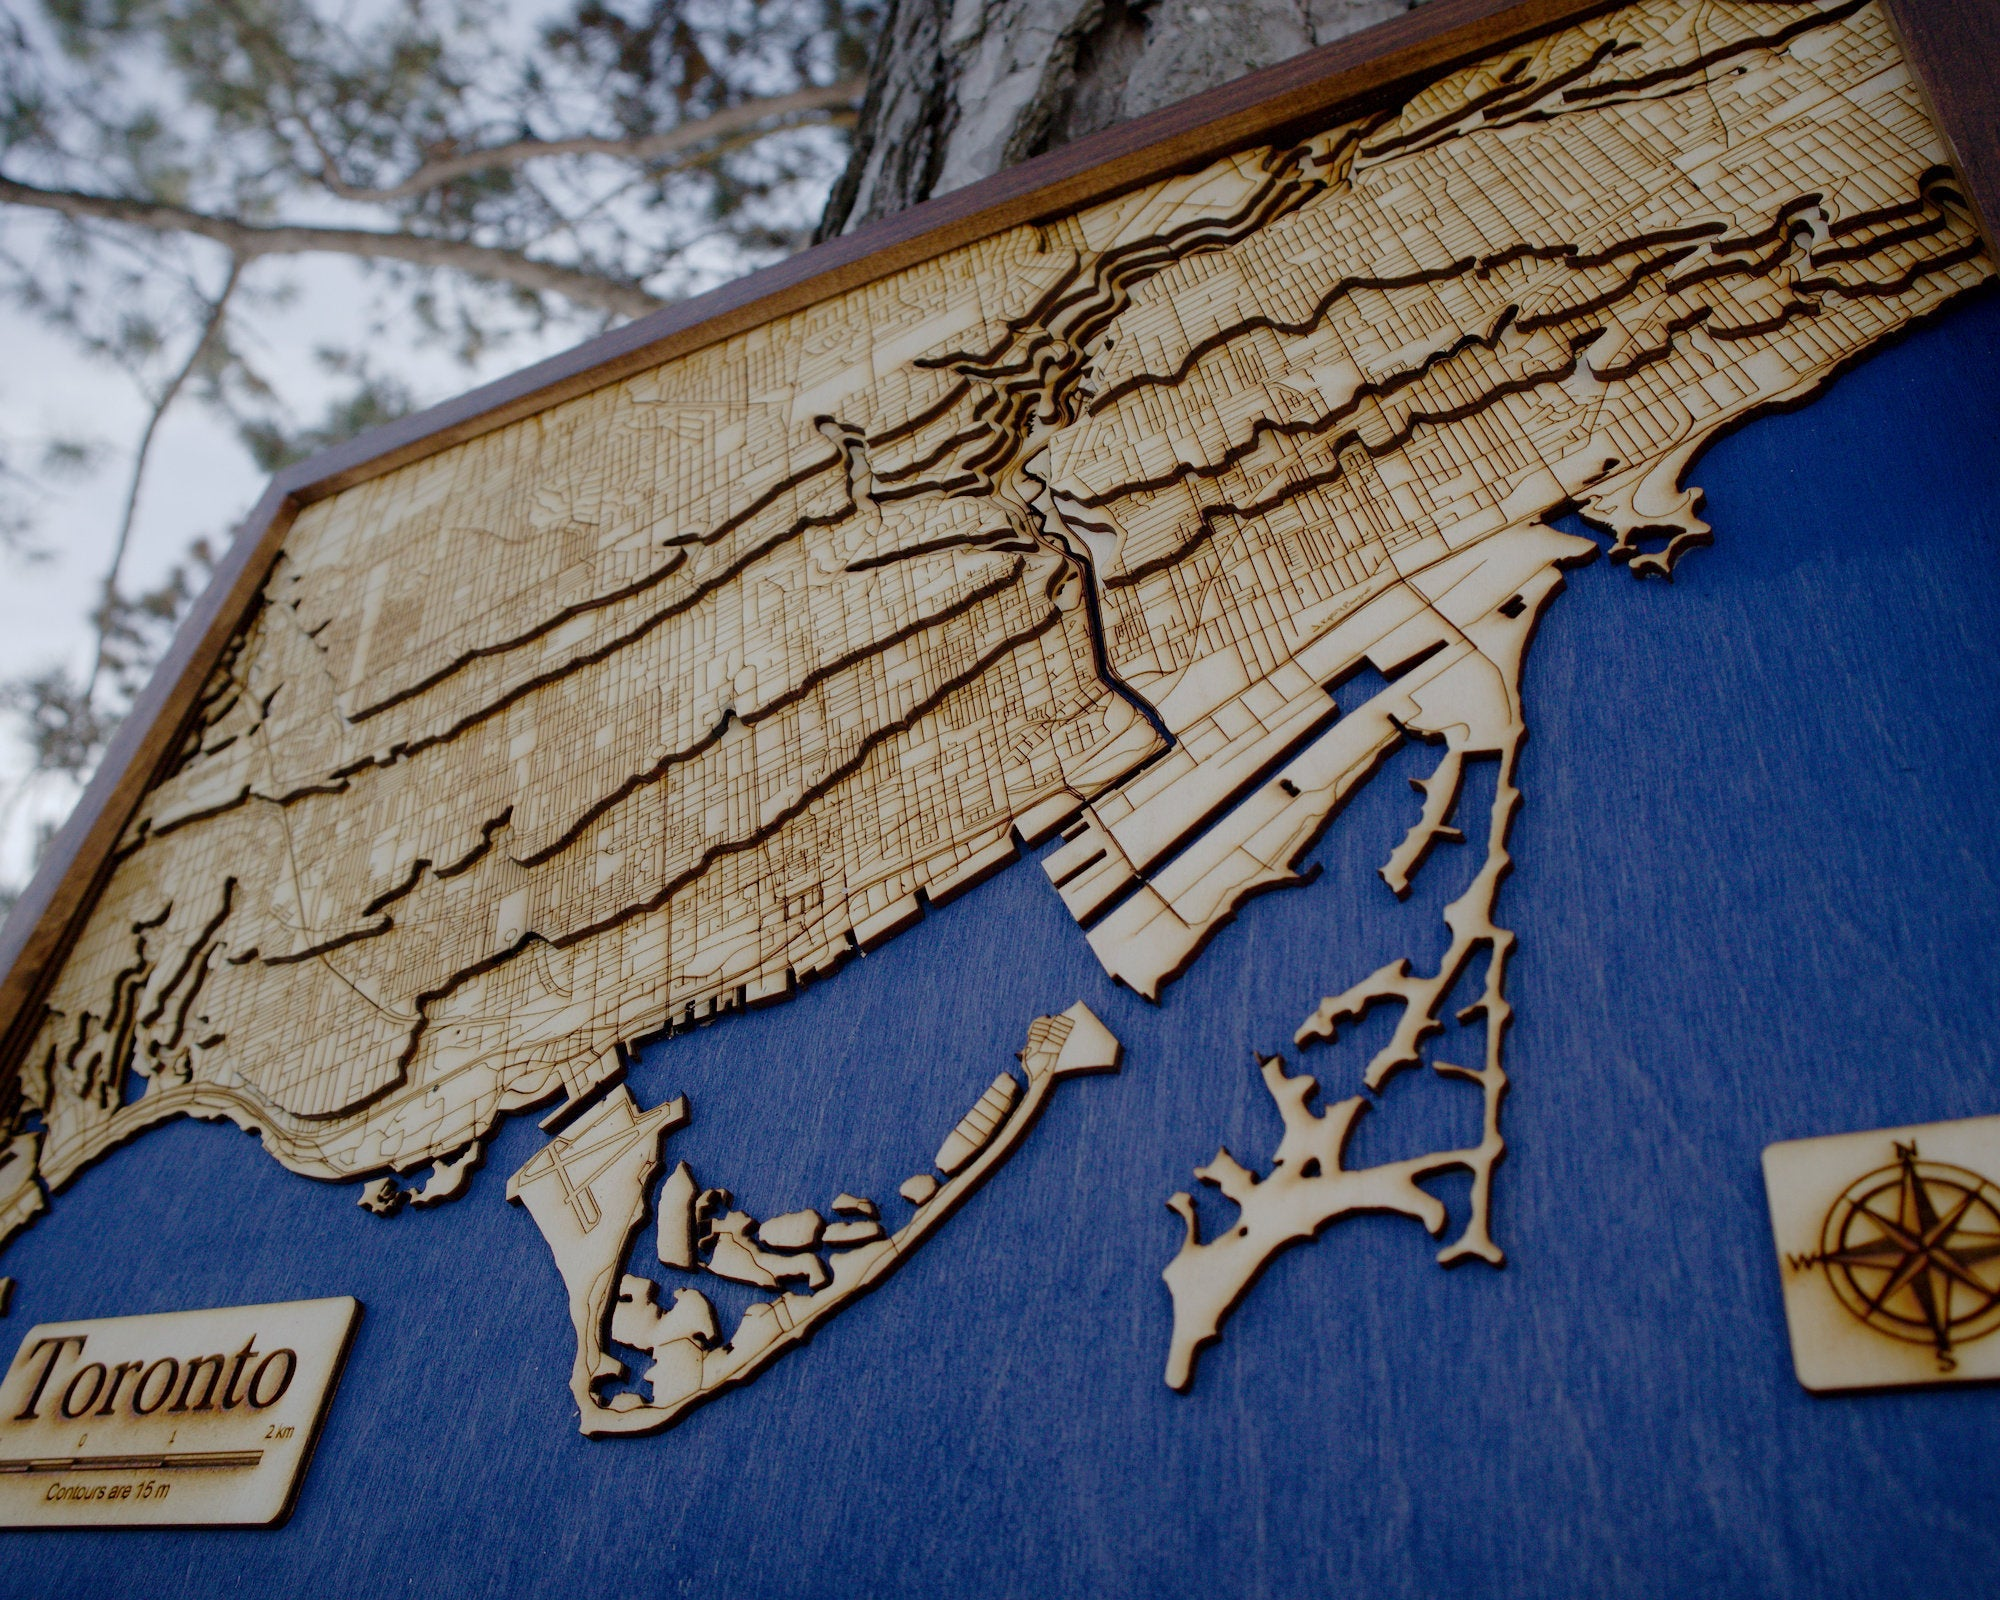 Toronto Wooden Topograhical Map